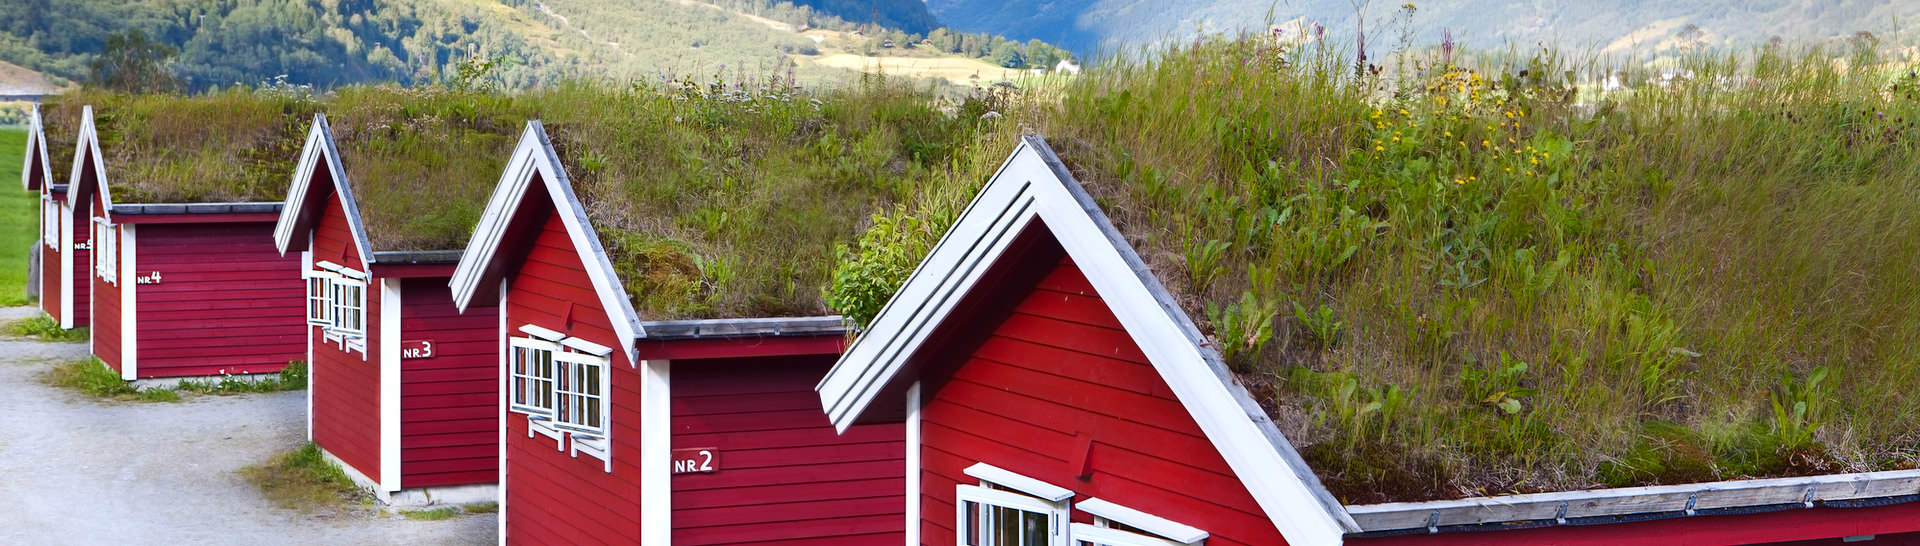 See the most famous Norwegian hallmarks, including iconic red wooden houses on your Norway tour